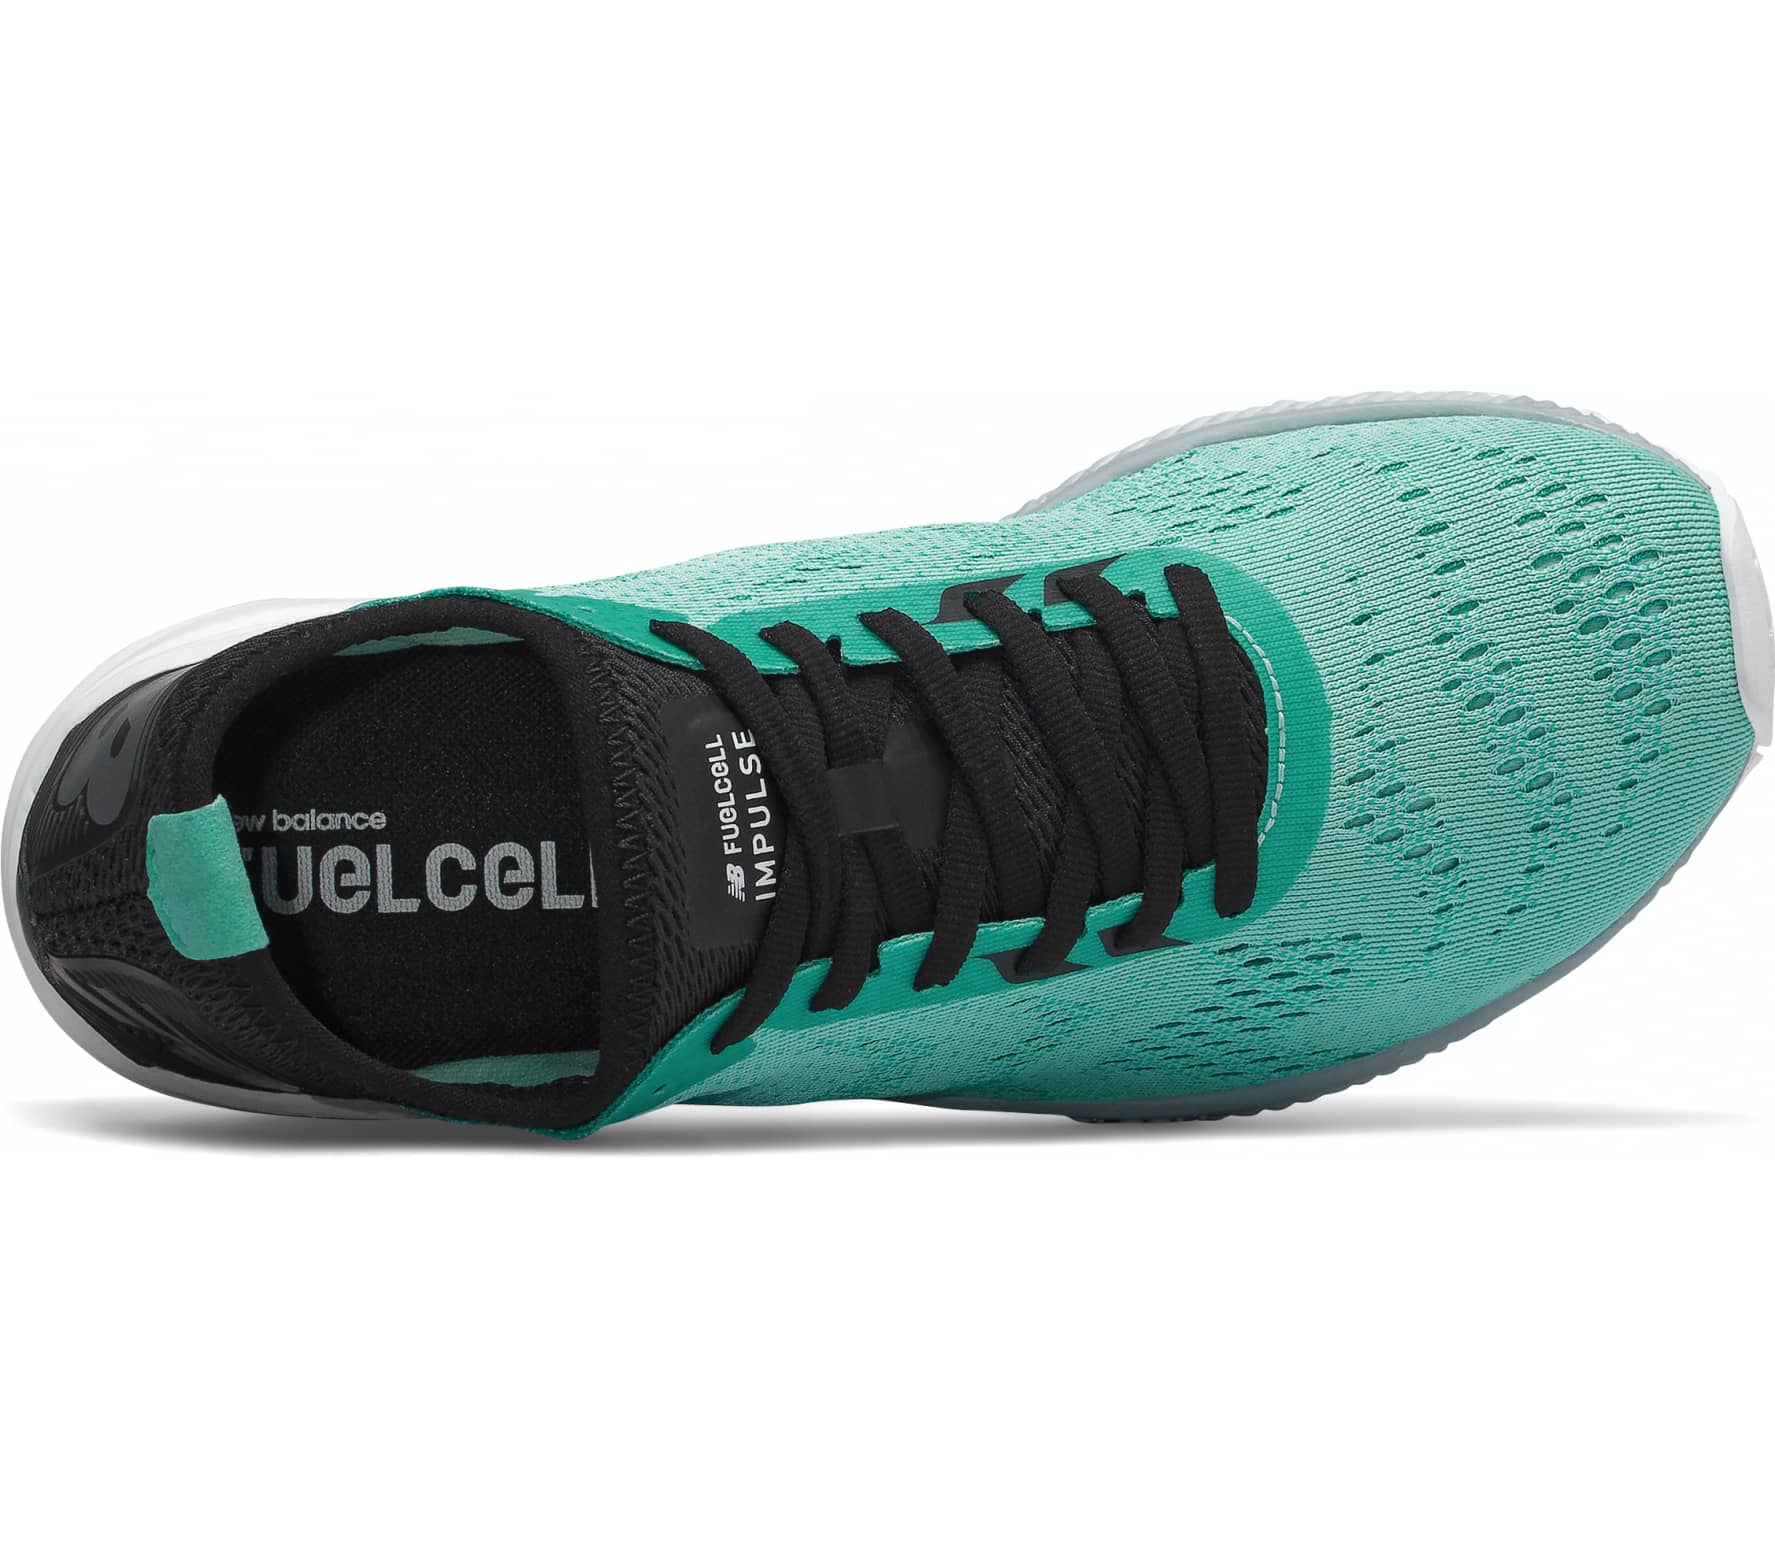 New Balance - Fuelcell Impulse Damen Laufschuh (türkis)